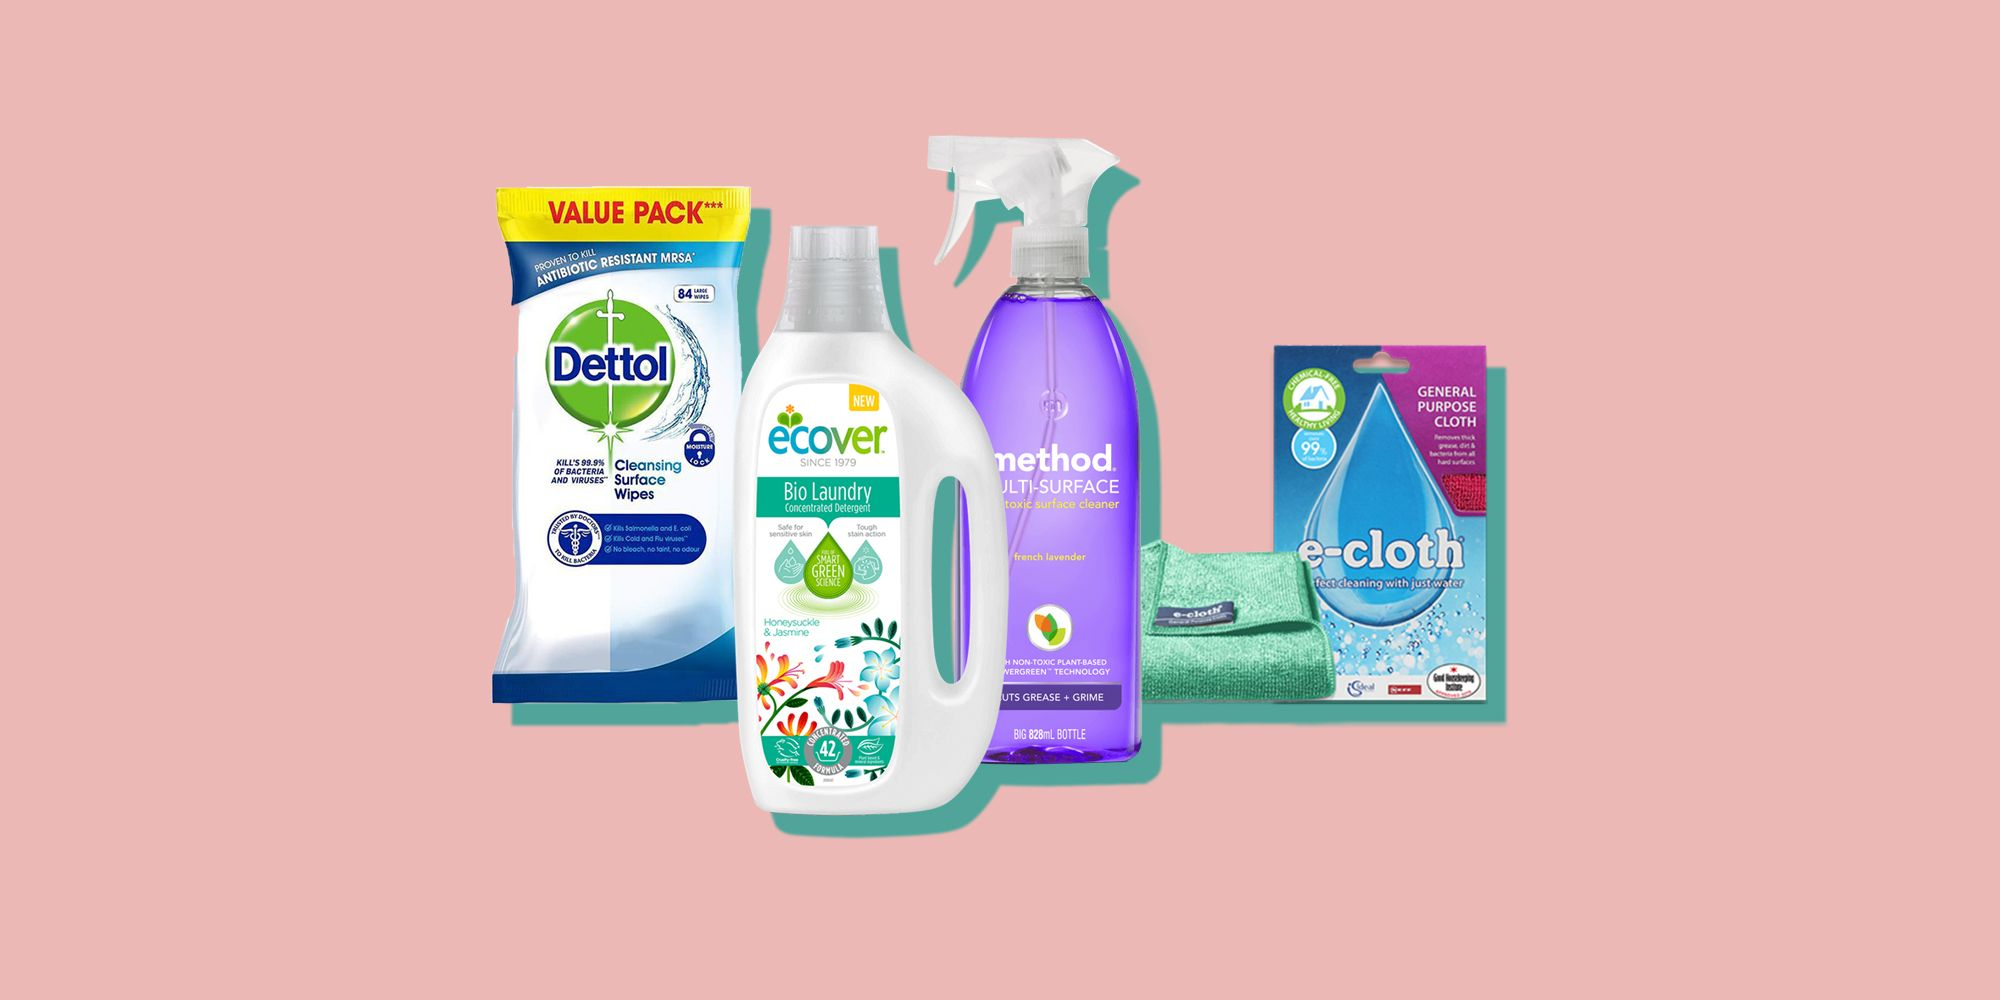 The Top Rated Cleaning Products That